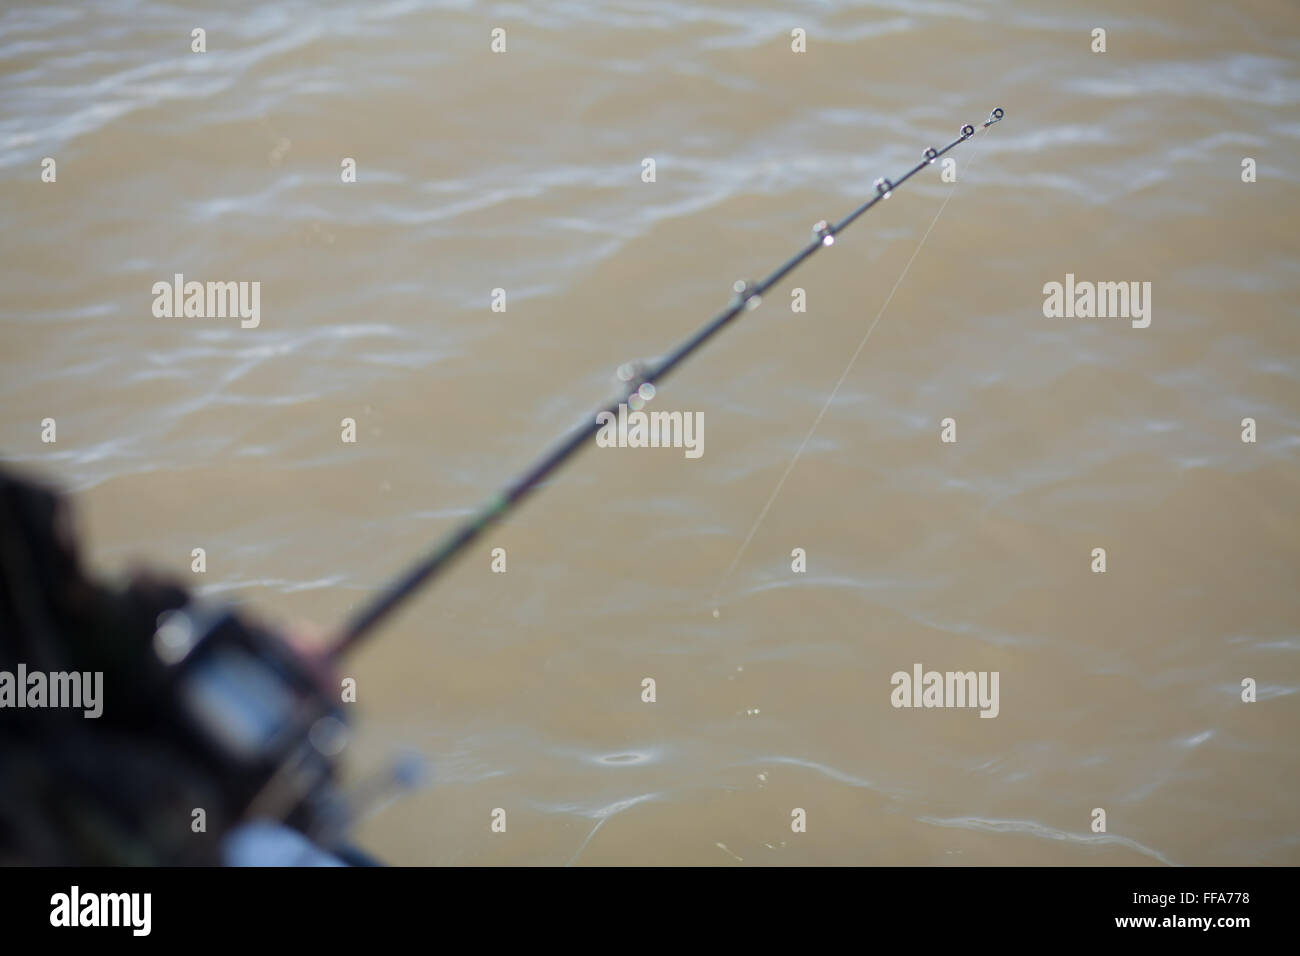 Close up of fishing rod in murky water - Stock Image